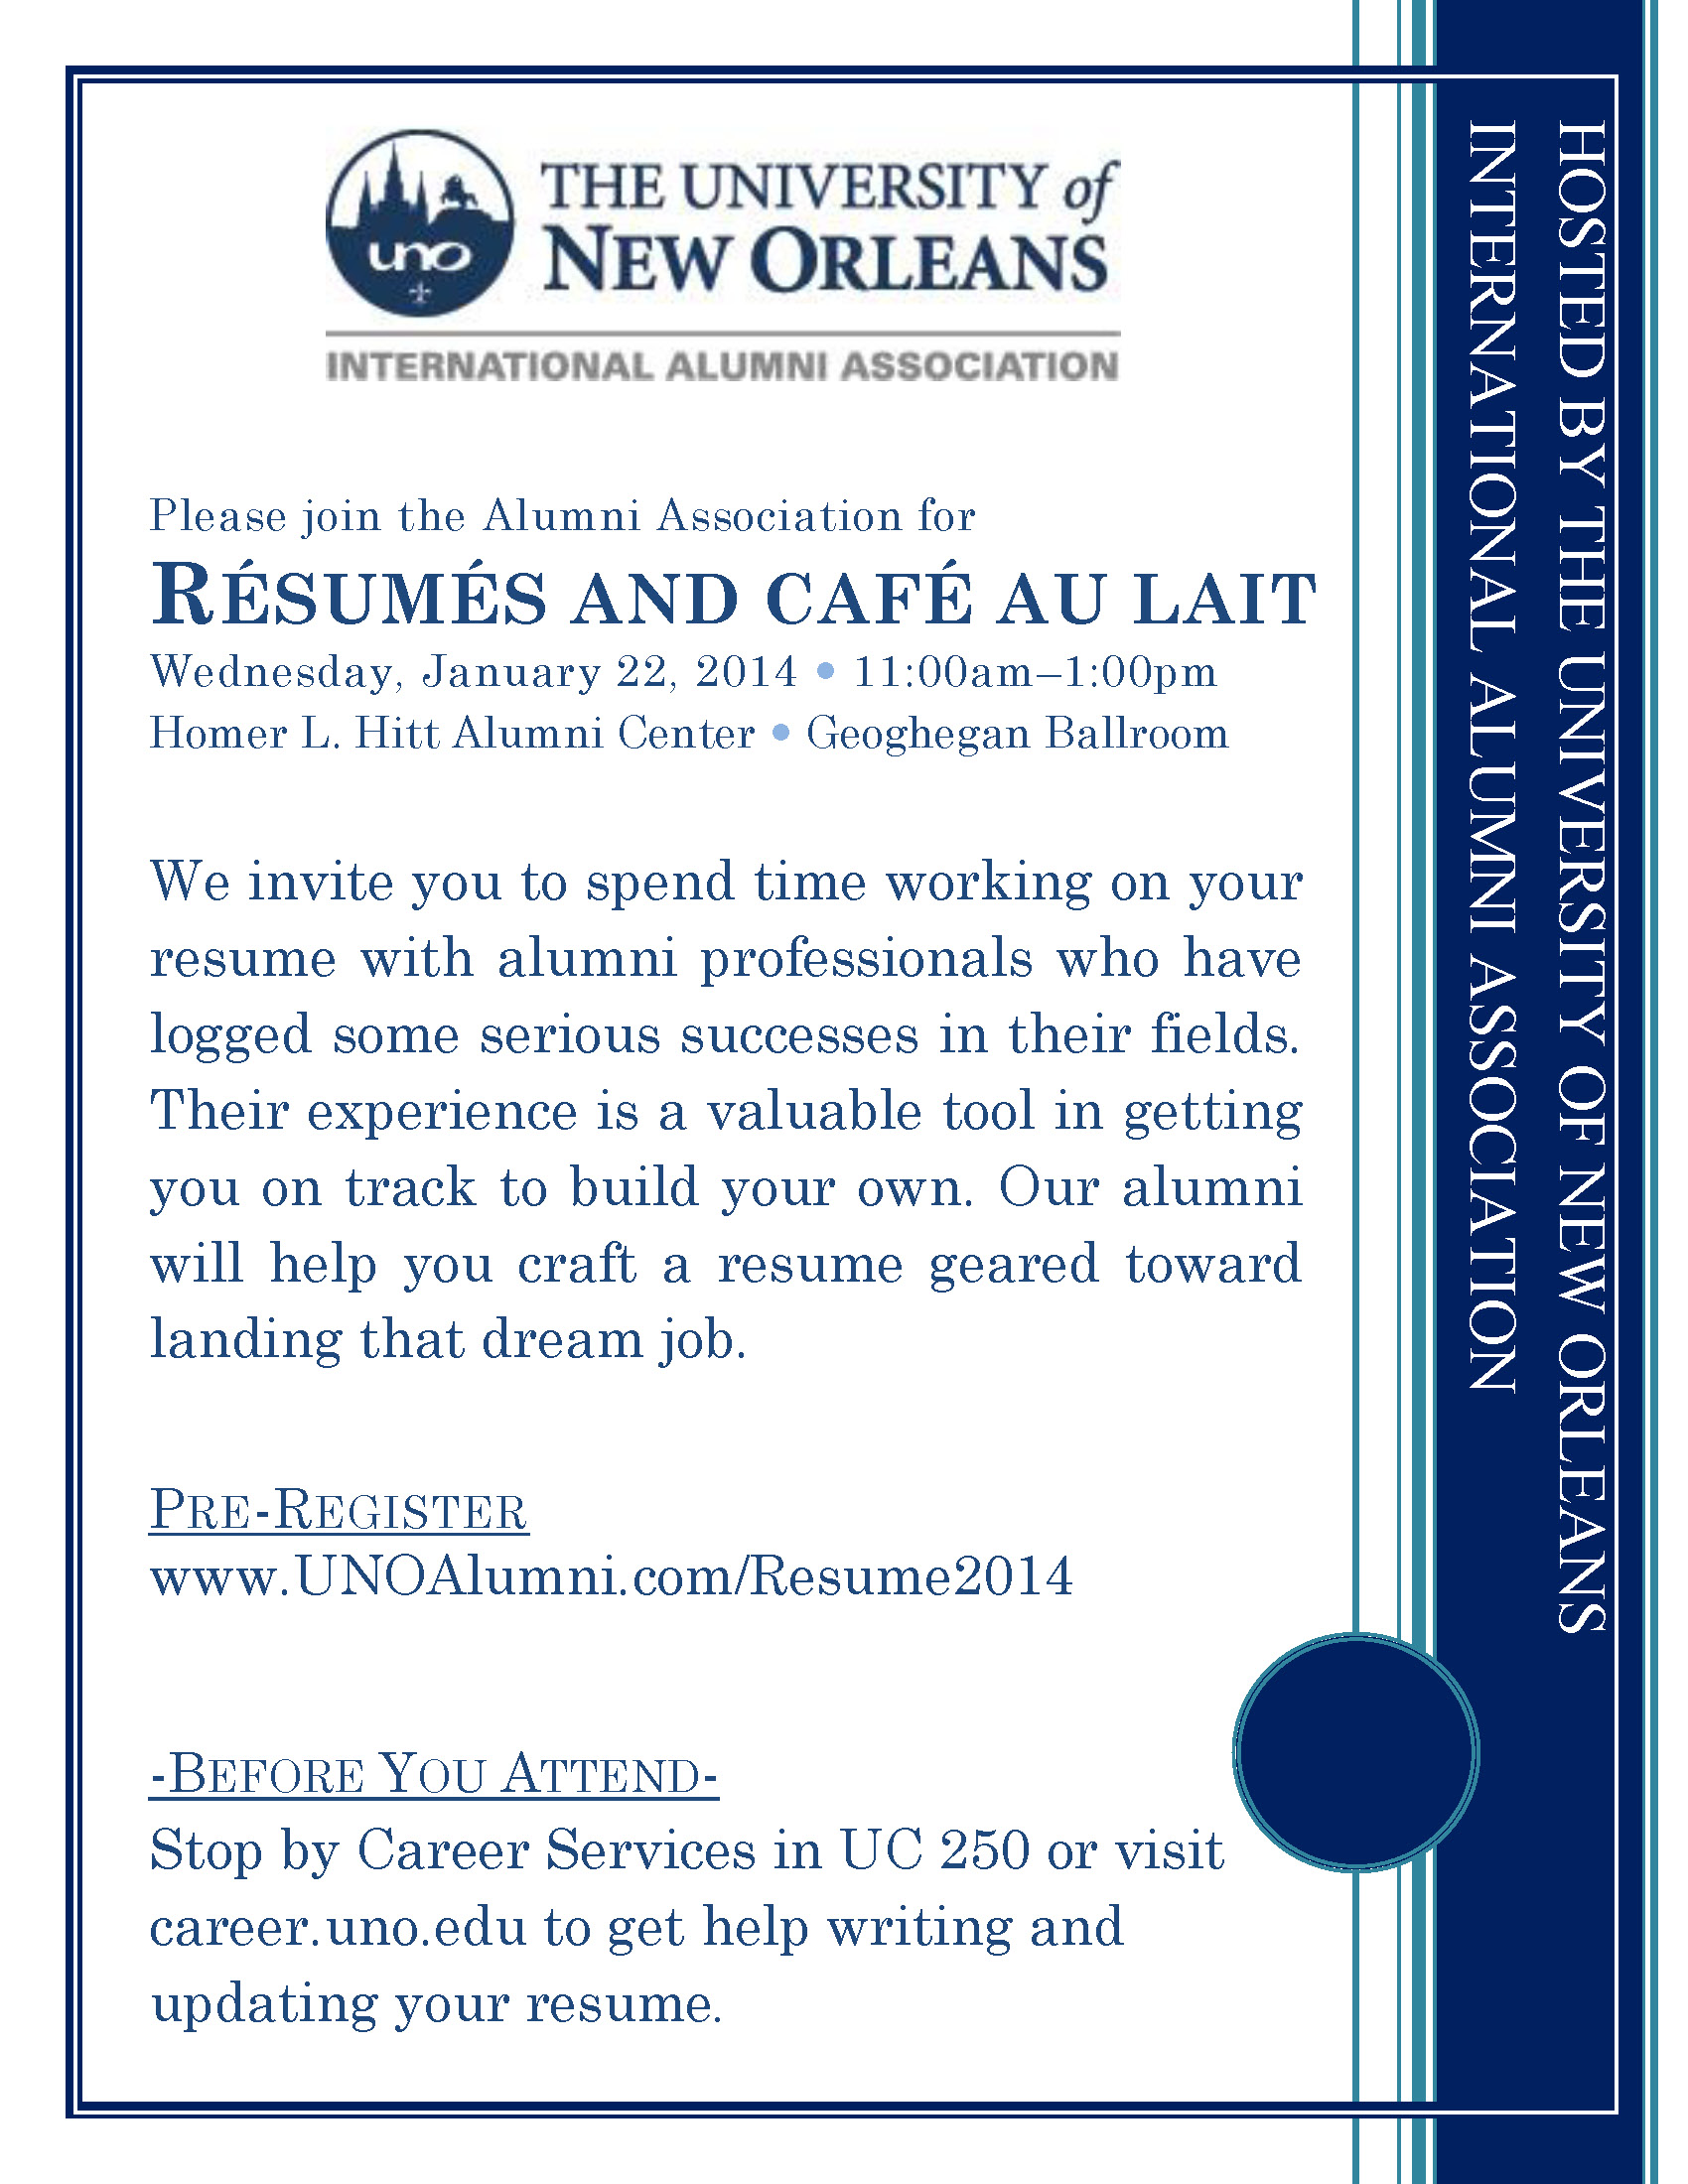 Resumes And Cafe Au Lait College Of Liberal Arts At Uno